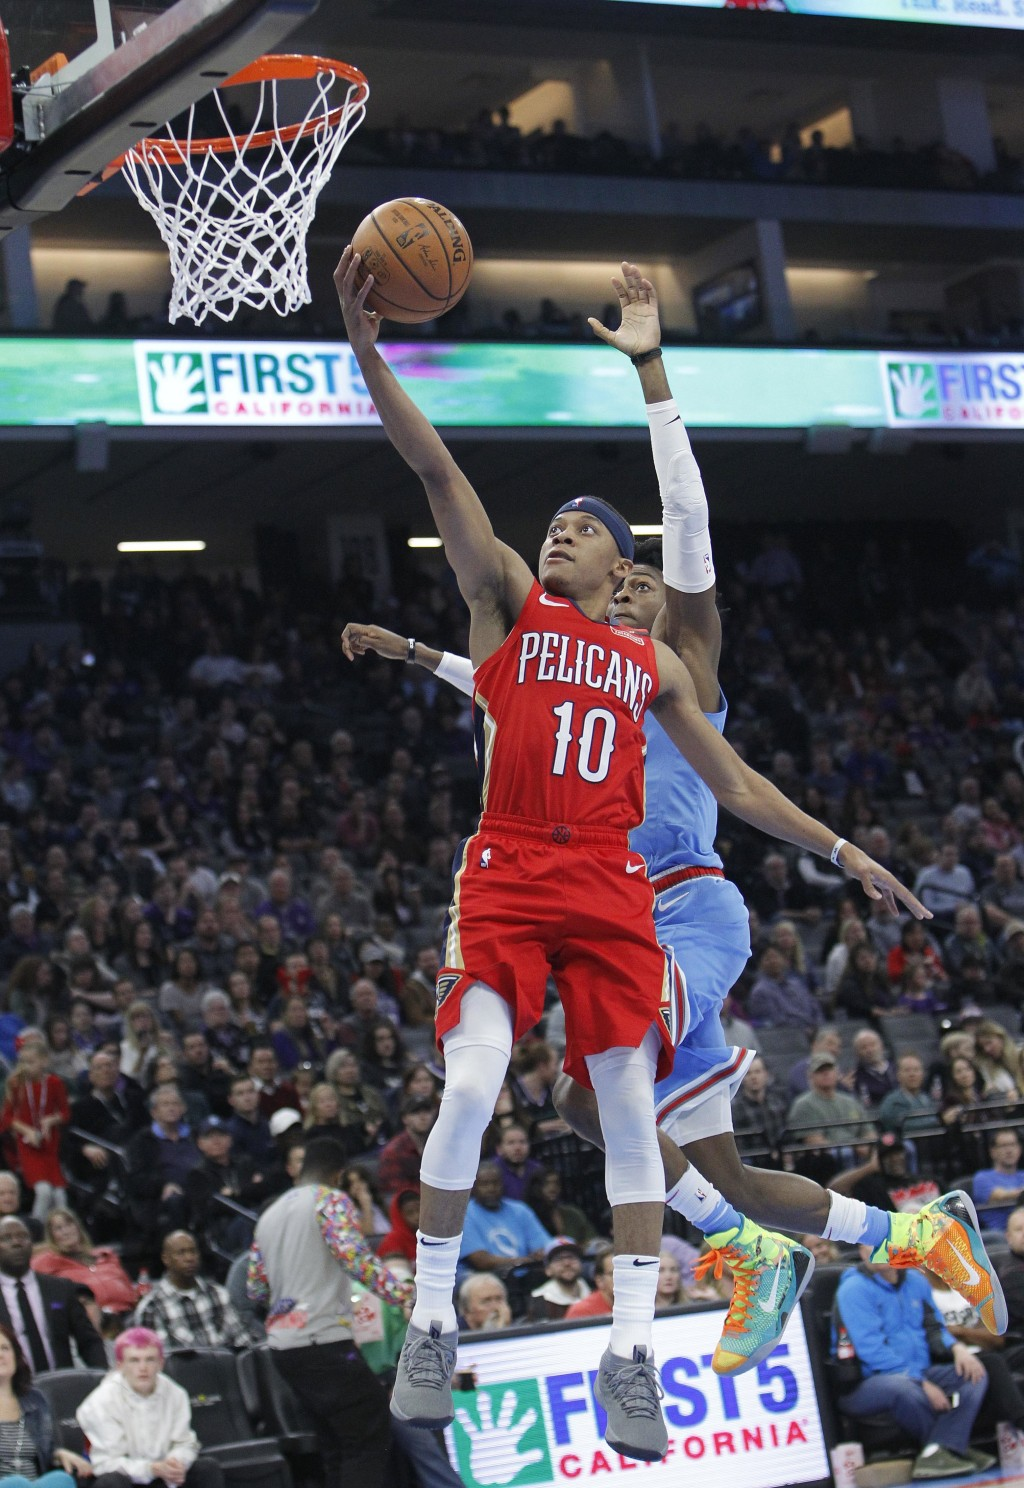 New Orleans Pelicans guard Tim Frazier (10) drives to the basket only to have his shot blocked by Sacramento Kings guard De'Aaron Fox (5) during the f...